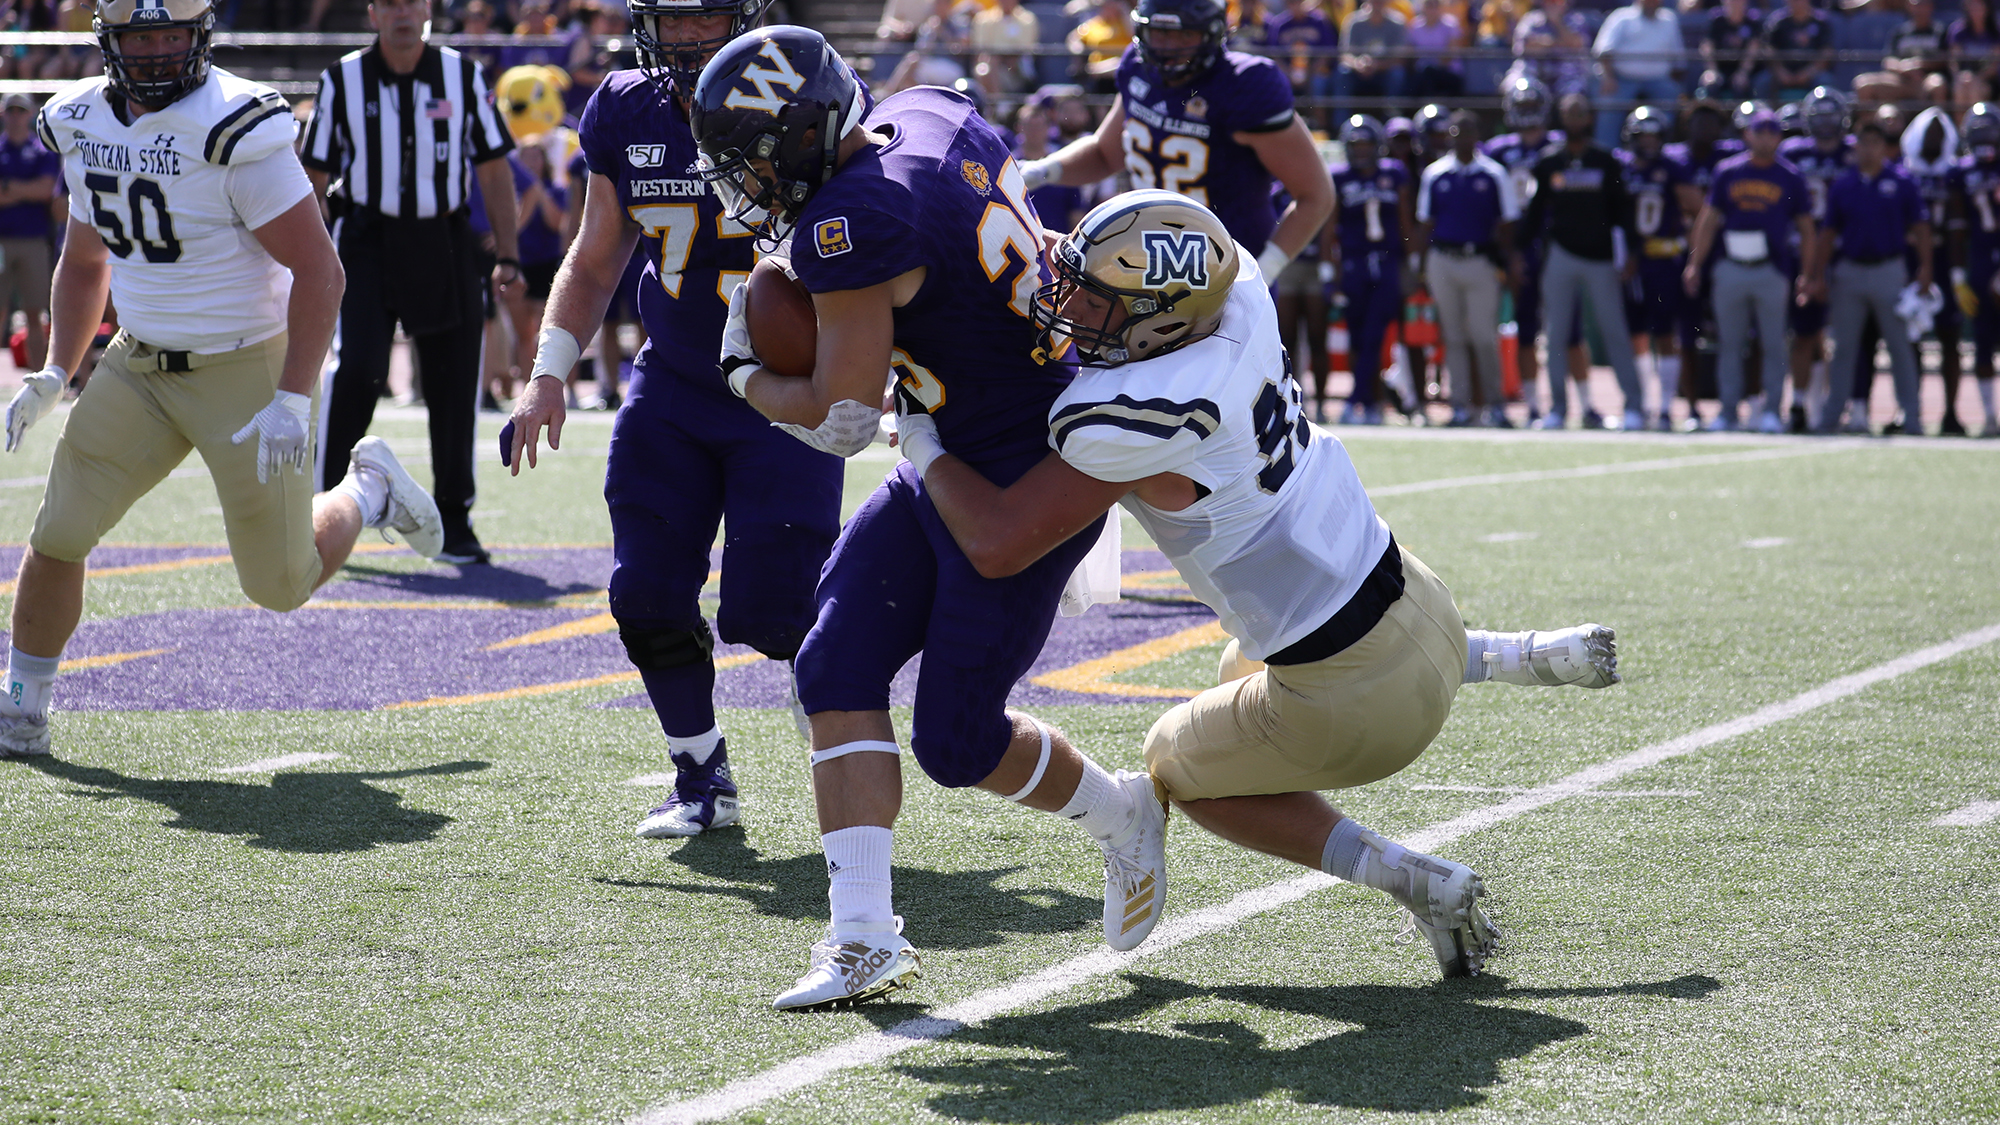 BOBCAT FOOTBALL GAME DAY NOTEBOOK #4: Montana State vs. Norfoli State